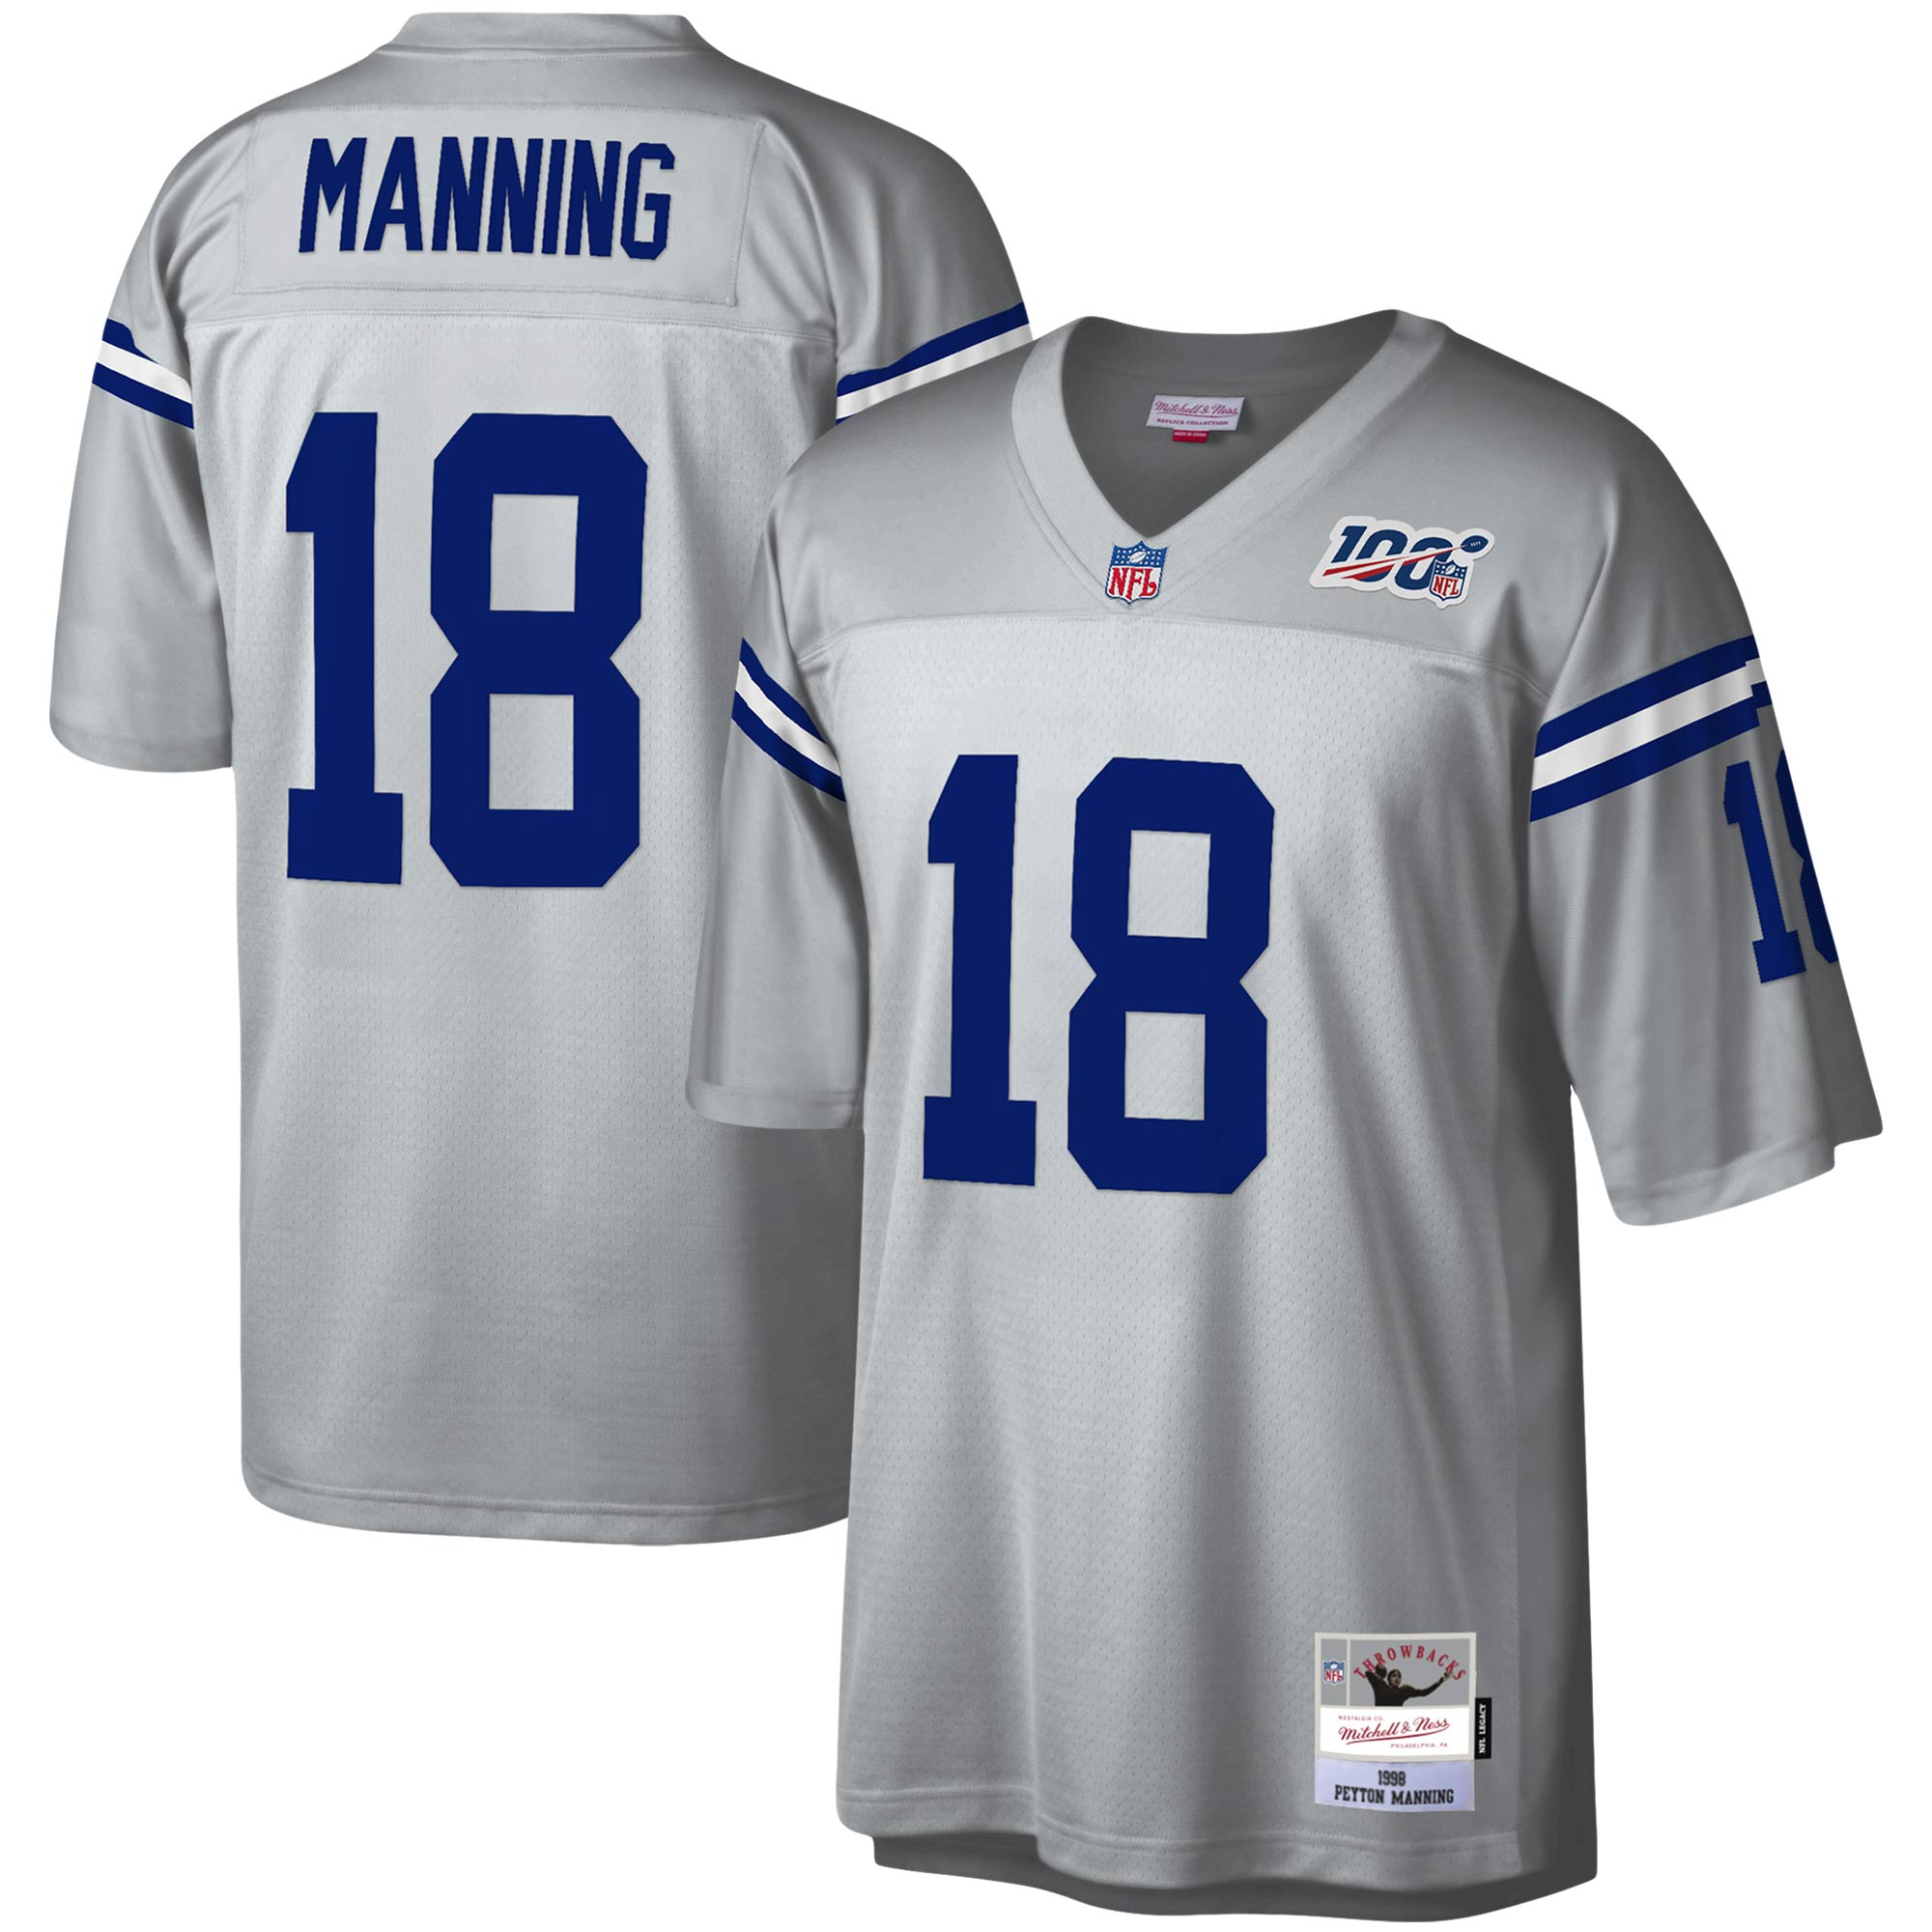 Peyton Manning Indianapolis Colts Mitchell & Ness NFL 100 Retired Player Legacy Jersey - Platinum